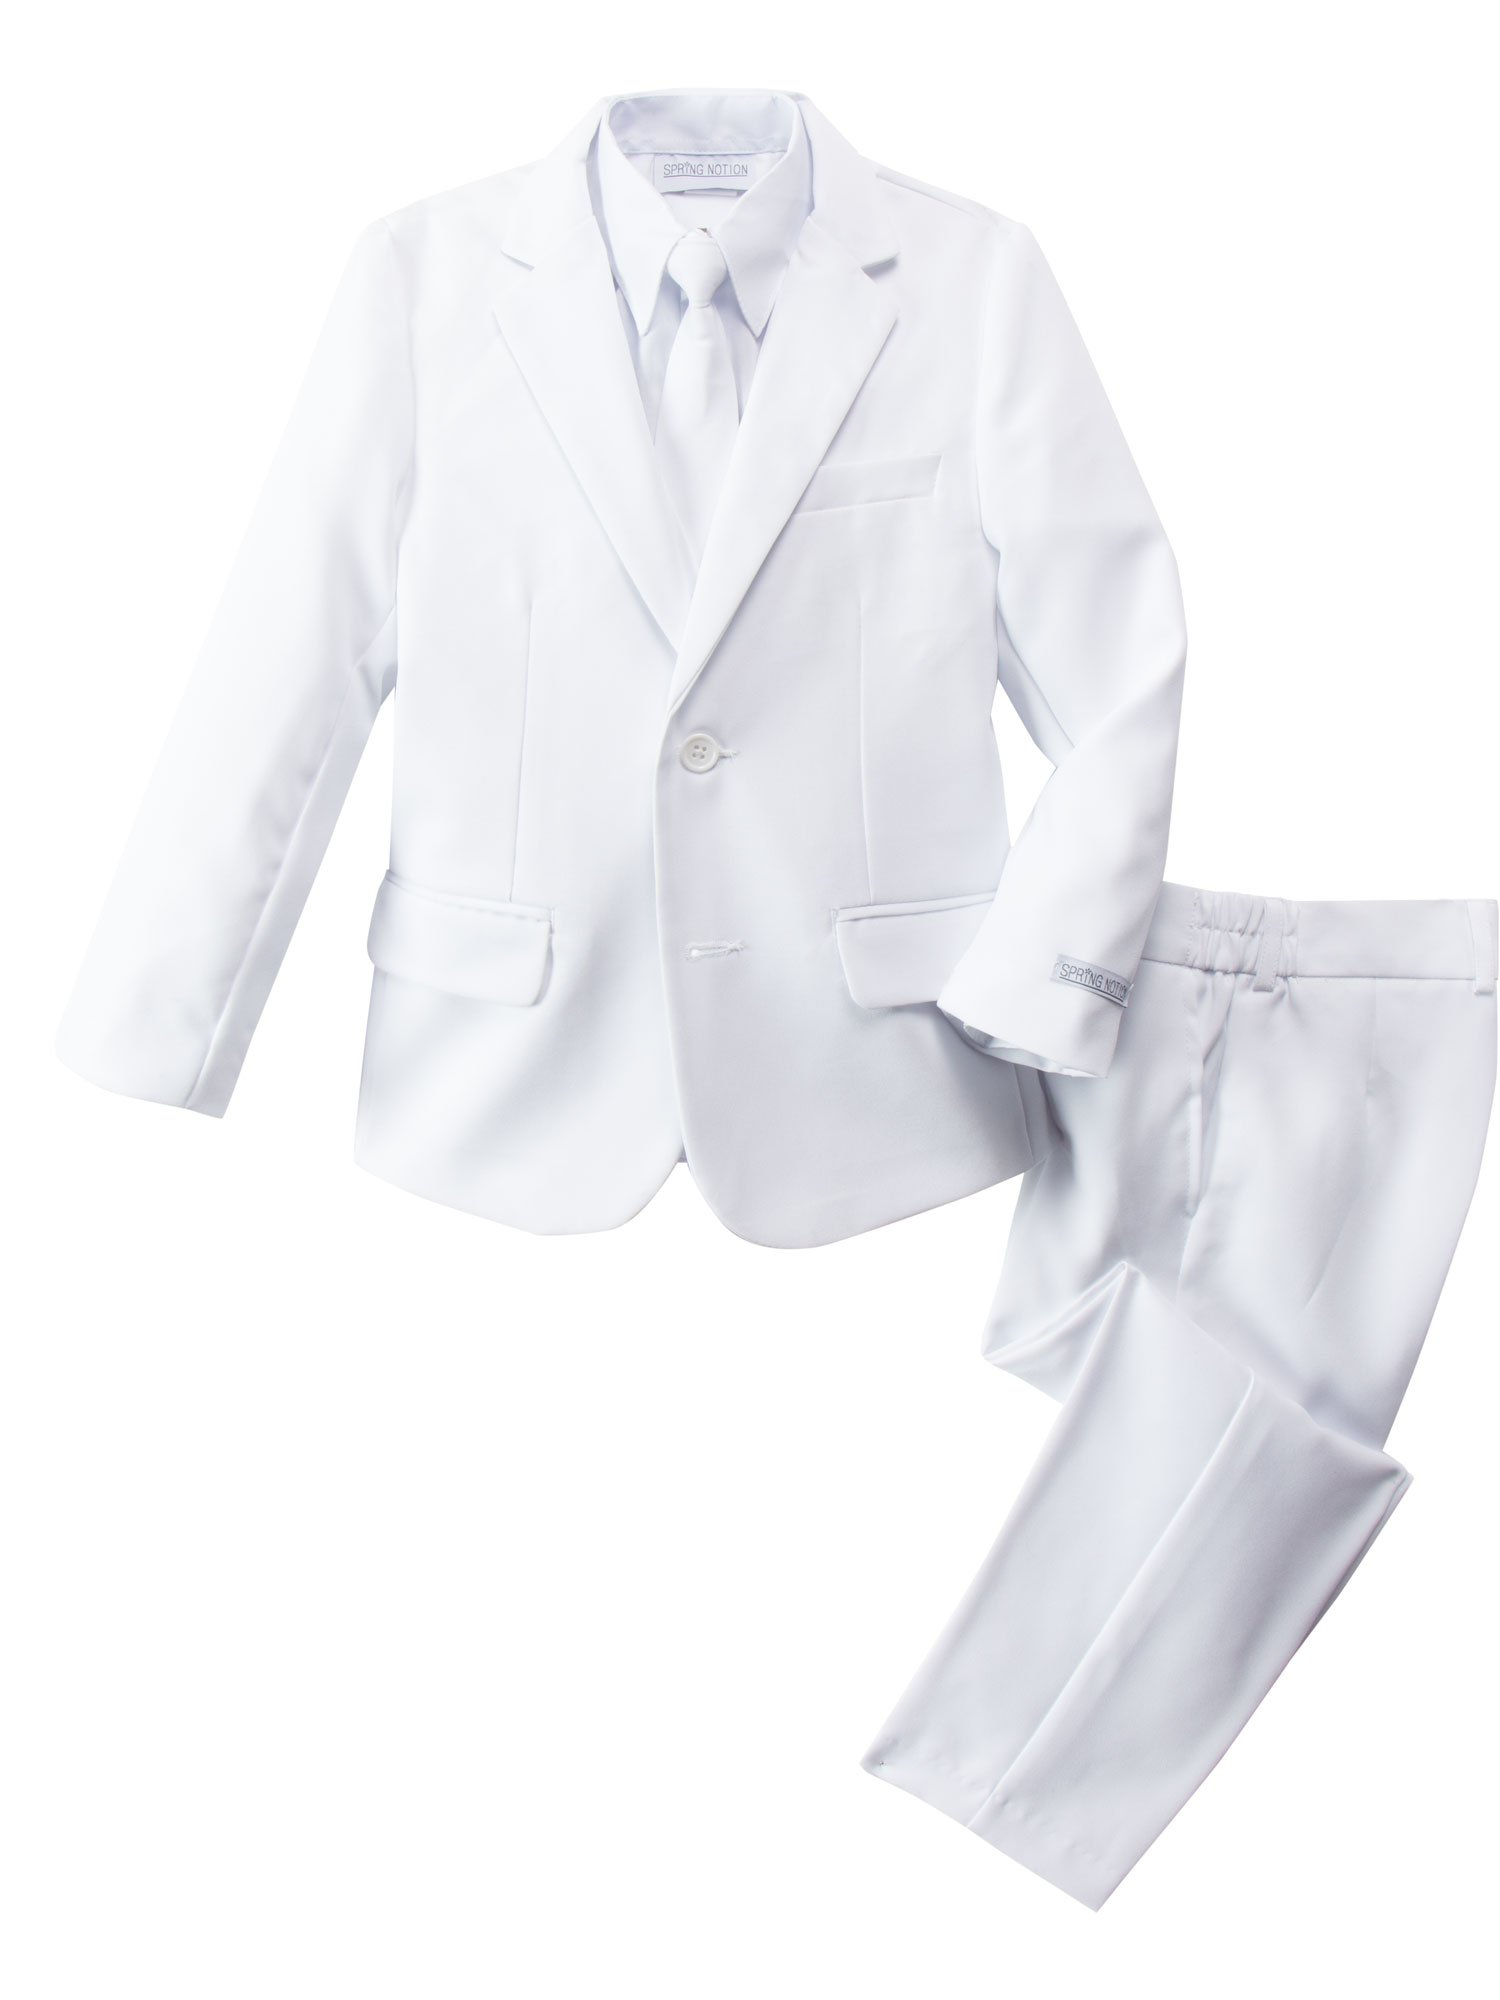 Spring Notion Boys' Modern Fit White Dress Suit Set 8